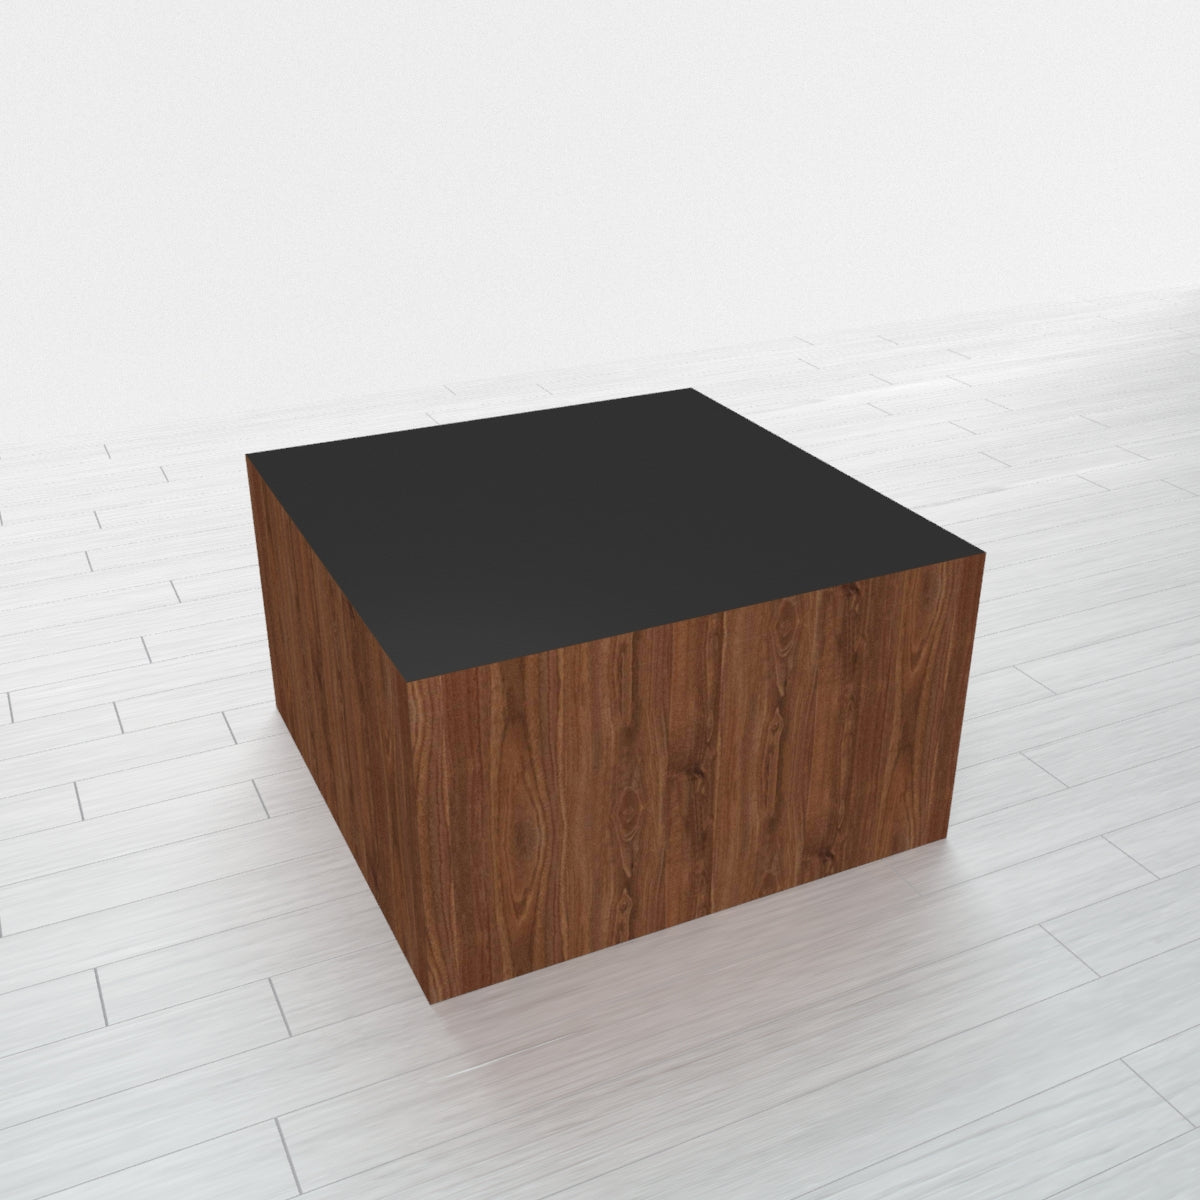 RECTANGLE - Thermo Walnut Base + Black Top - 20x20